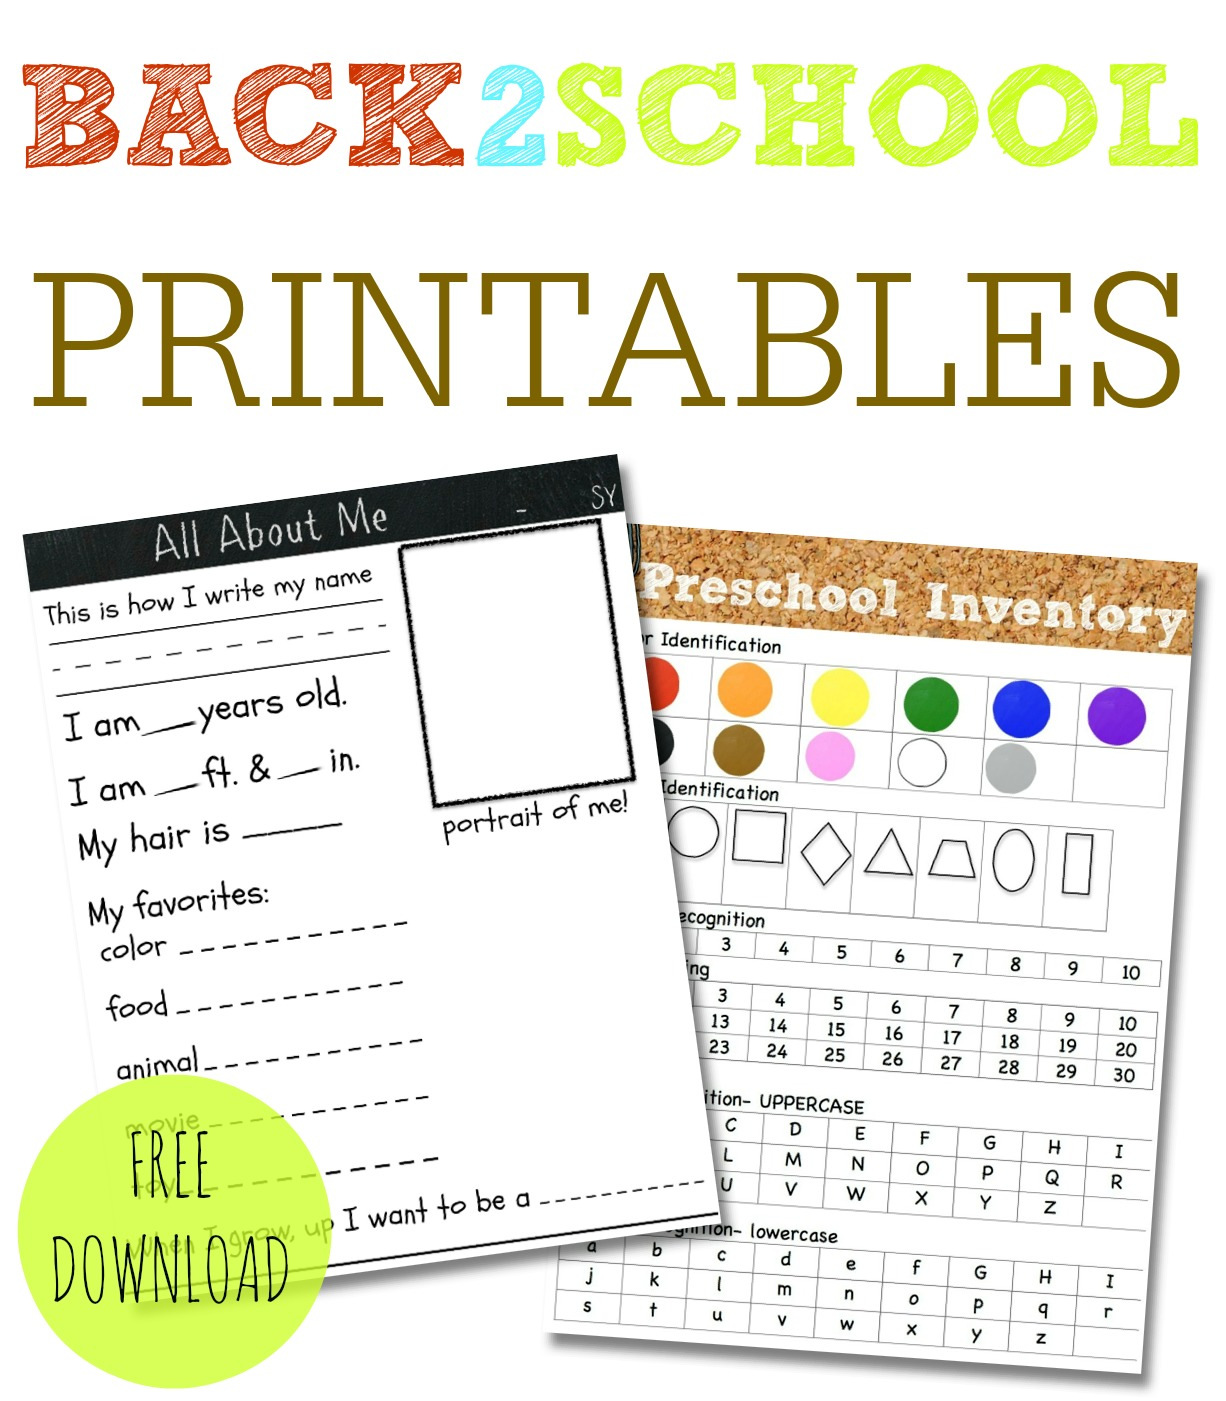 Ready For Preschool With Disney Junior Printable